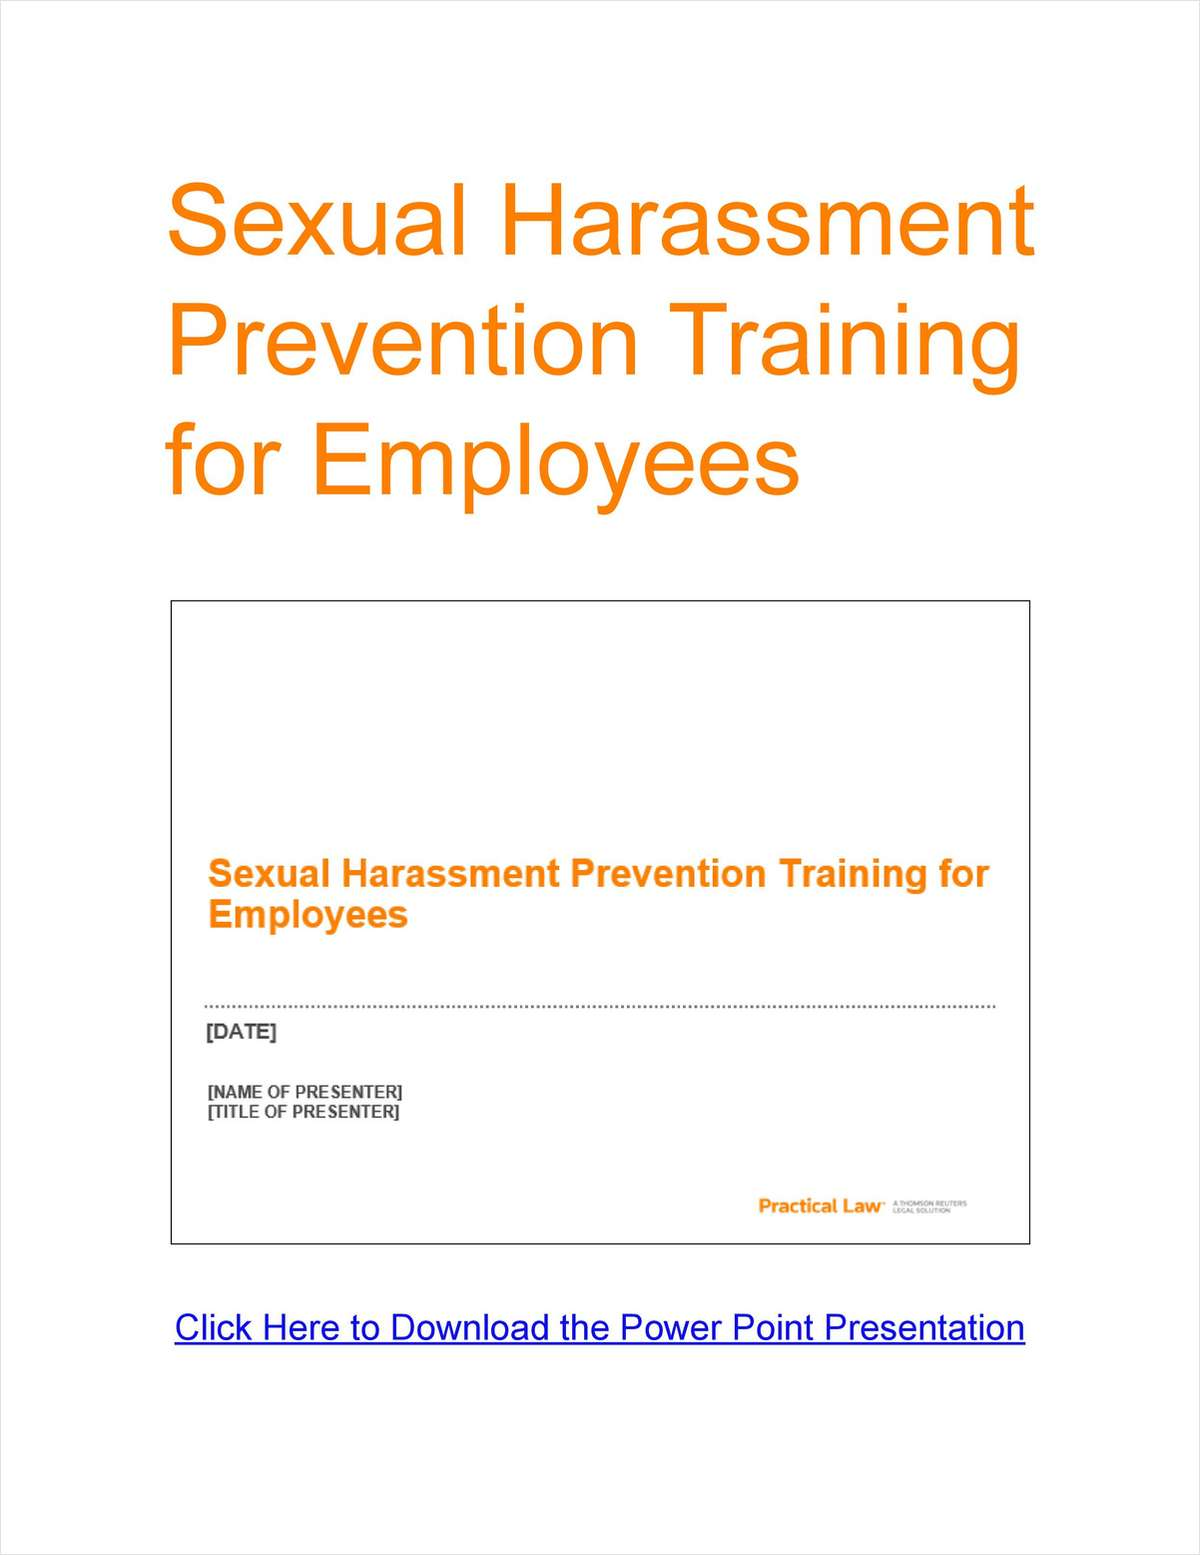 Sexual Harassment Prevention Training for Employees